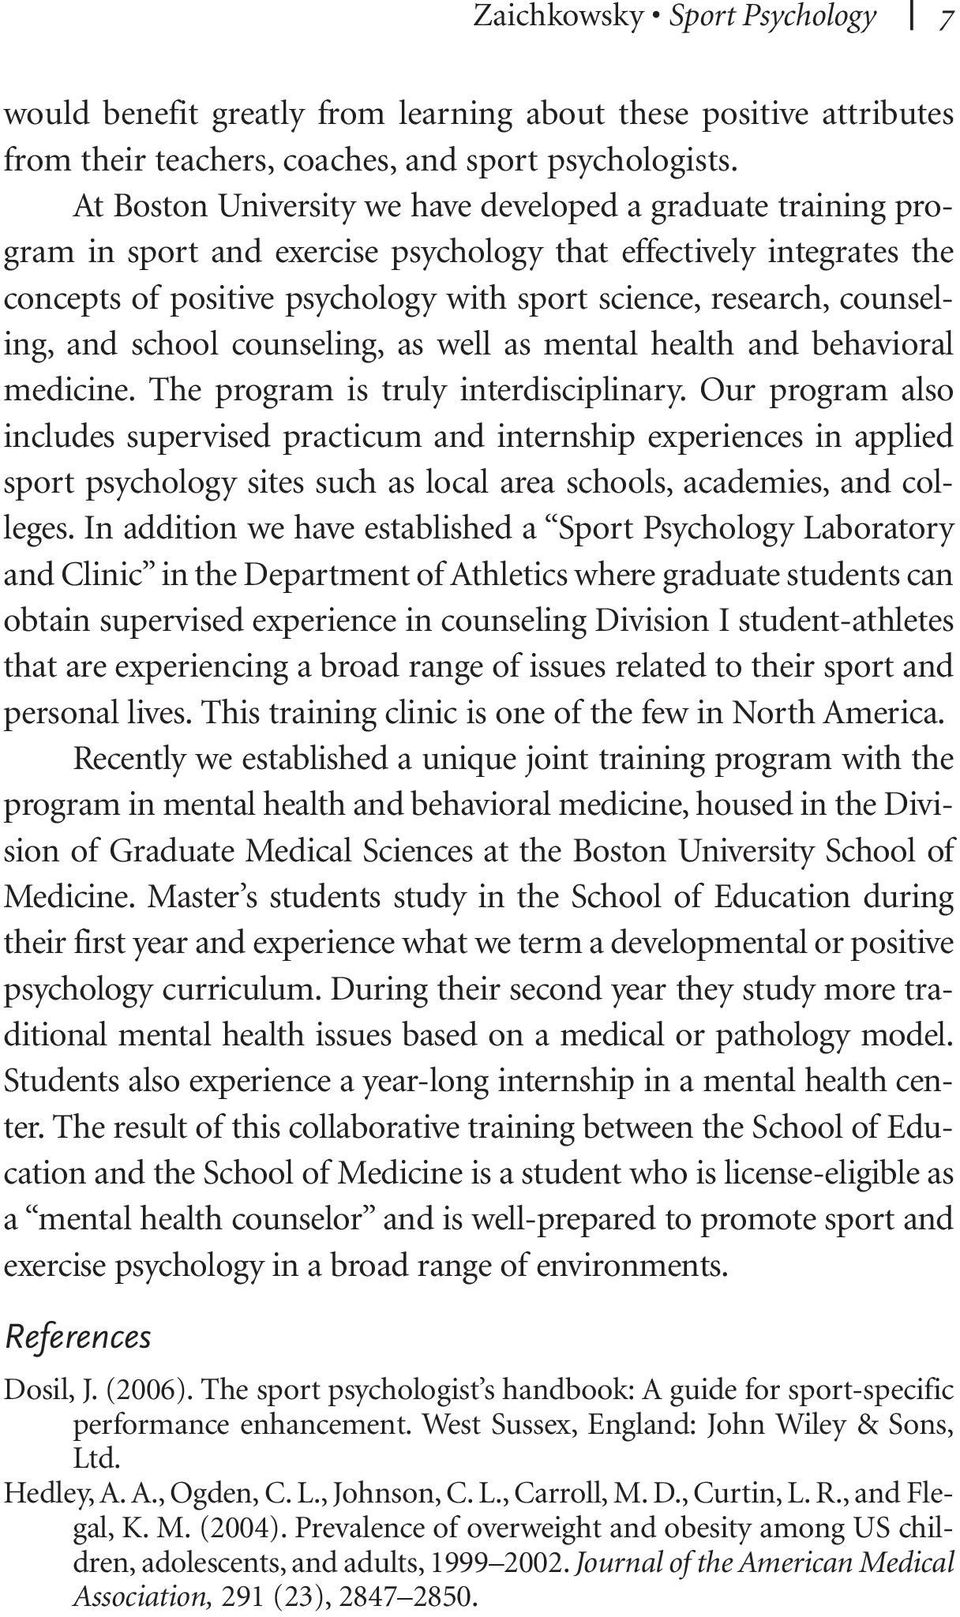 counseling, and school counseling, as well as mental health and behavioral medicine. The program is truly interdisciplinary.